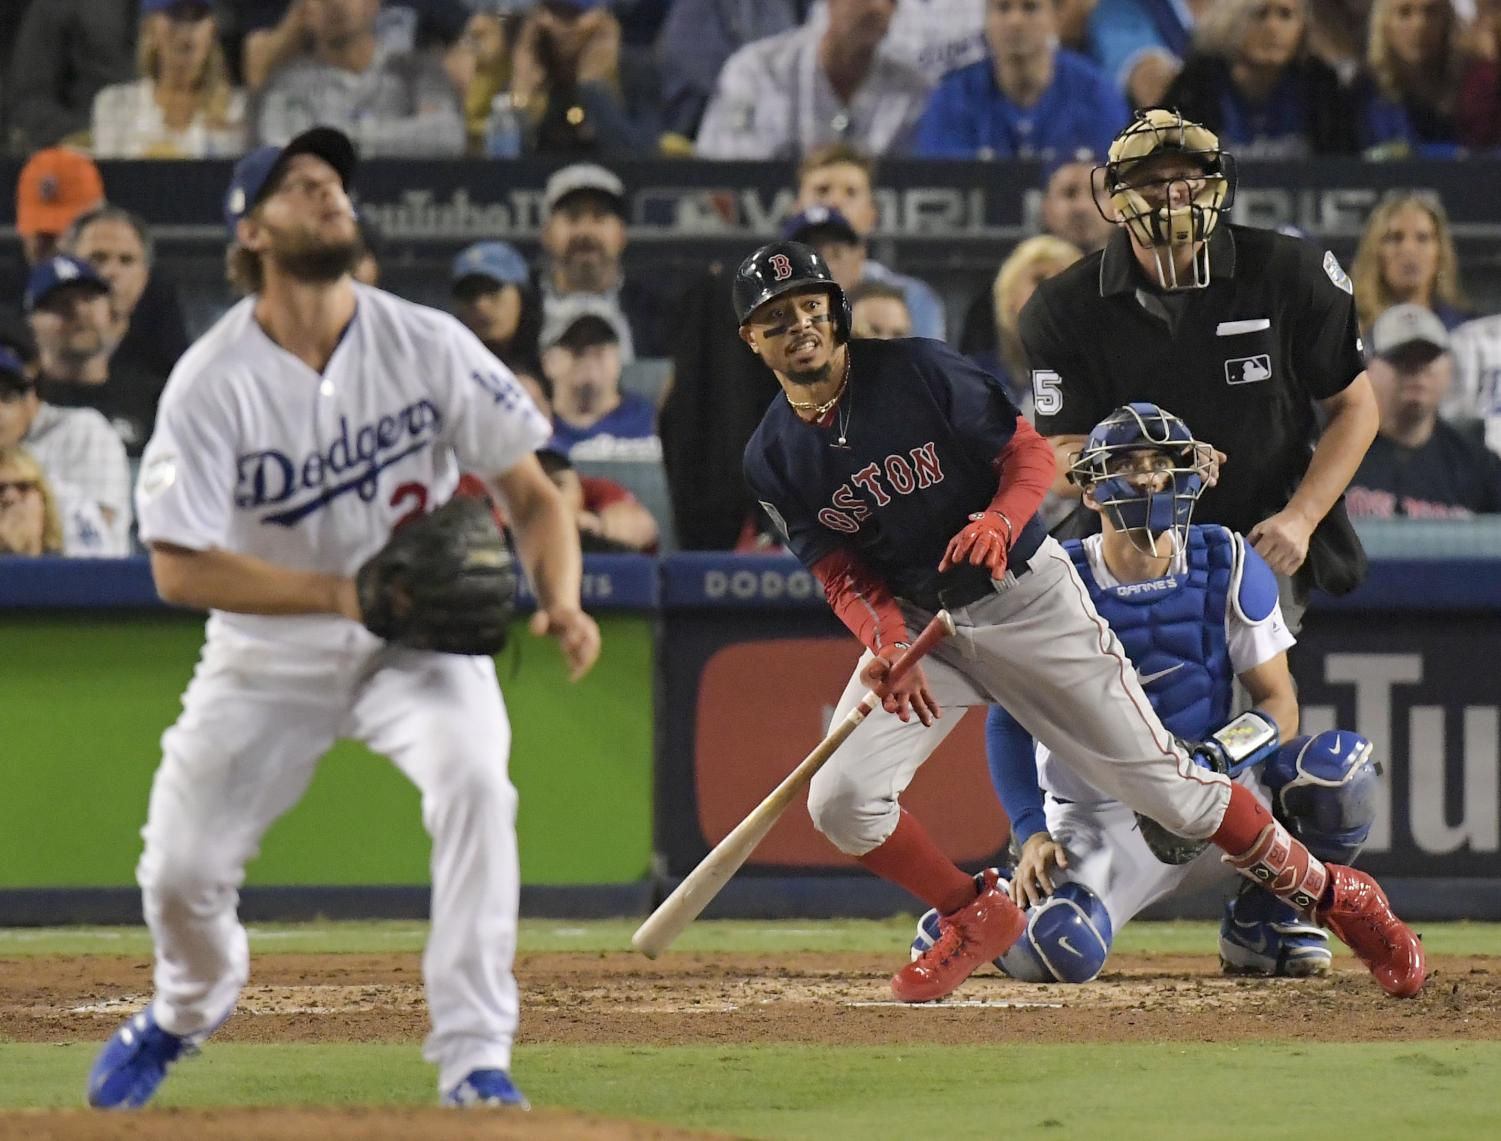 Boston Red Sox's Mookie Betts, right, watches his home run off Los Angeles Dodgers starting pitcher Clayton Kershaw during the sixth inning in Game 5 of the World Series baseball game on Sunday, Oct. 28, 2018, in Los Angeles. (AP Photo/Mark J. Terrill)